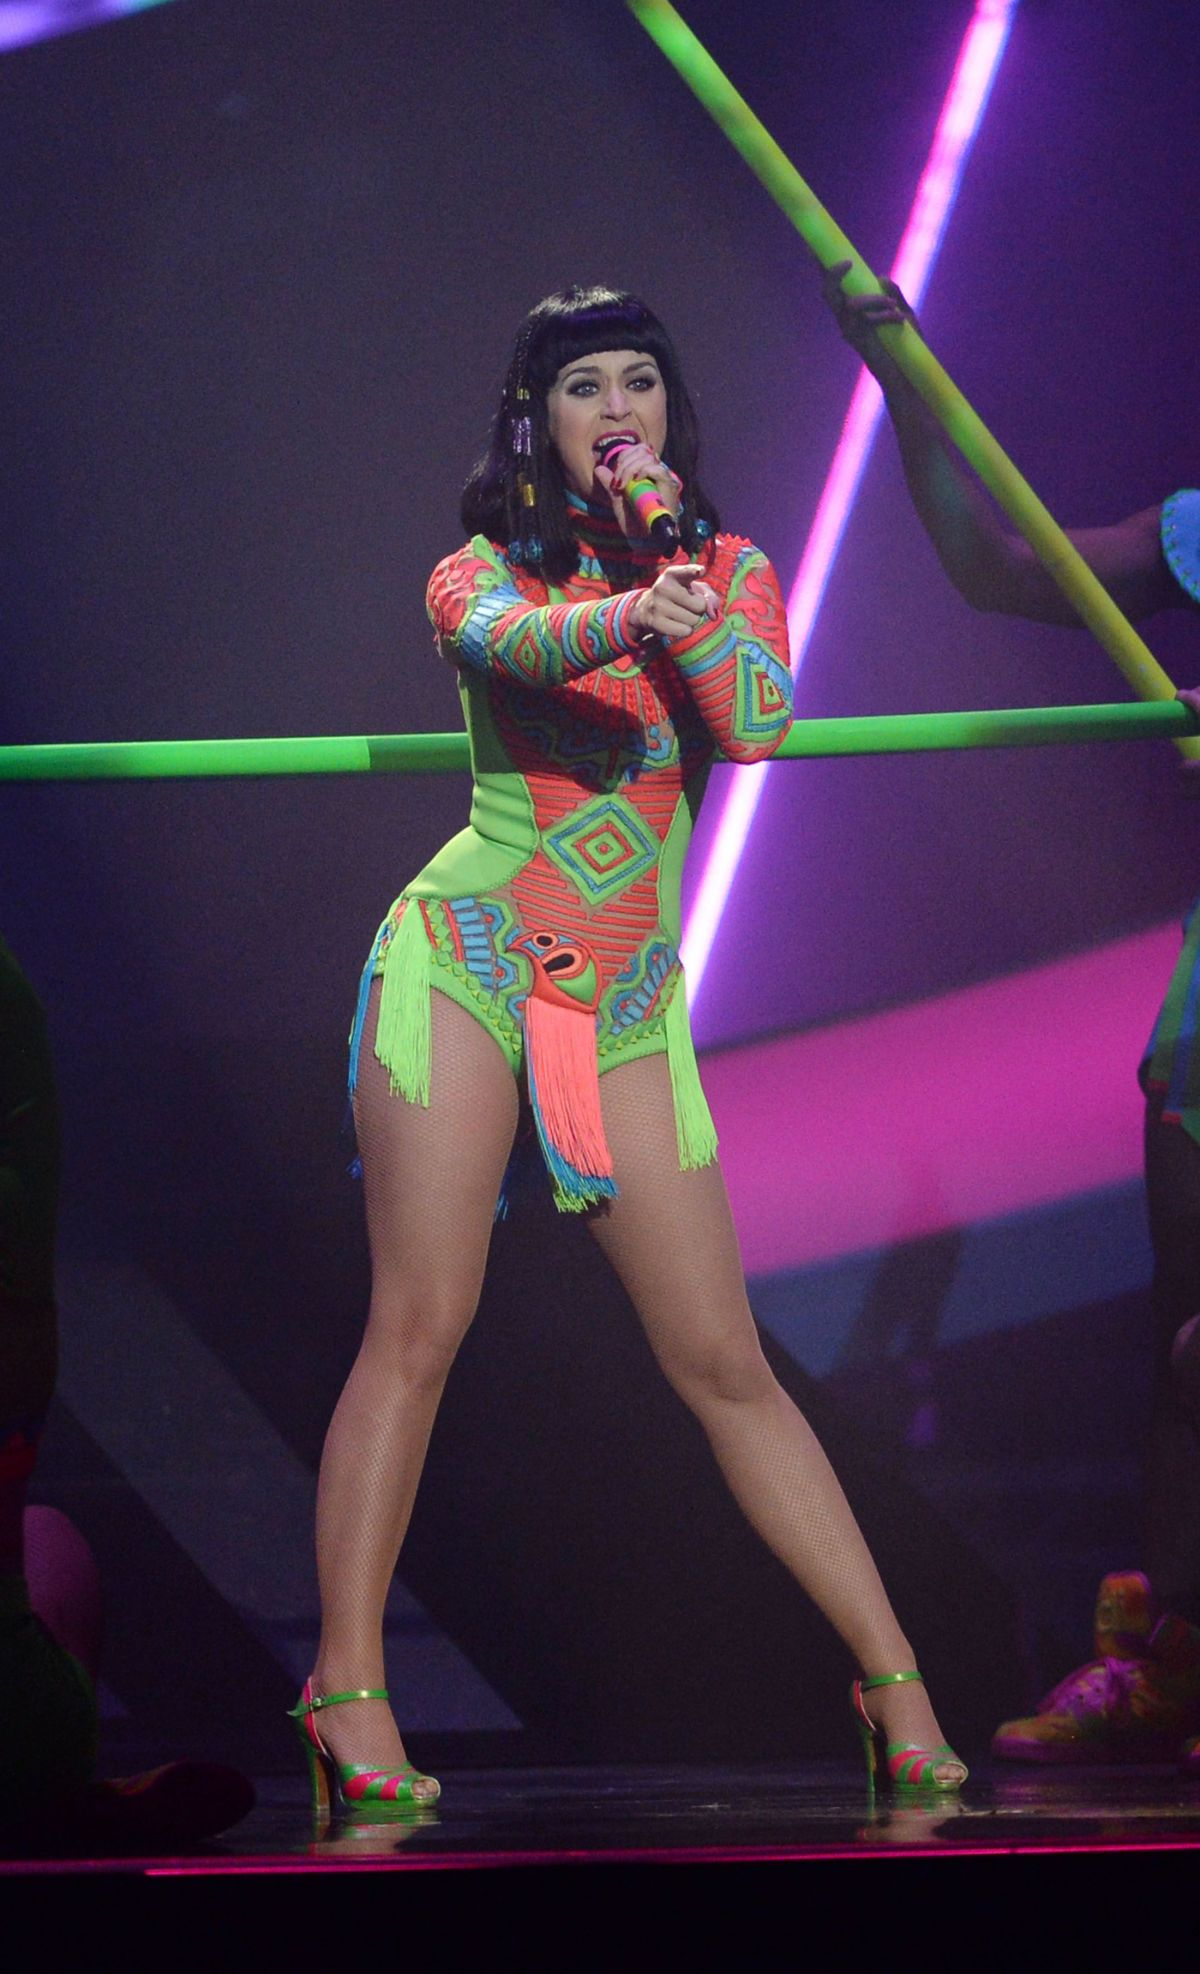 Katy perry live at singapore 2012 hd 7